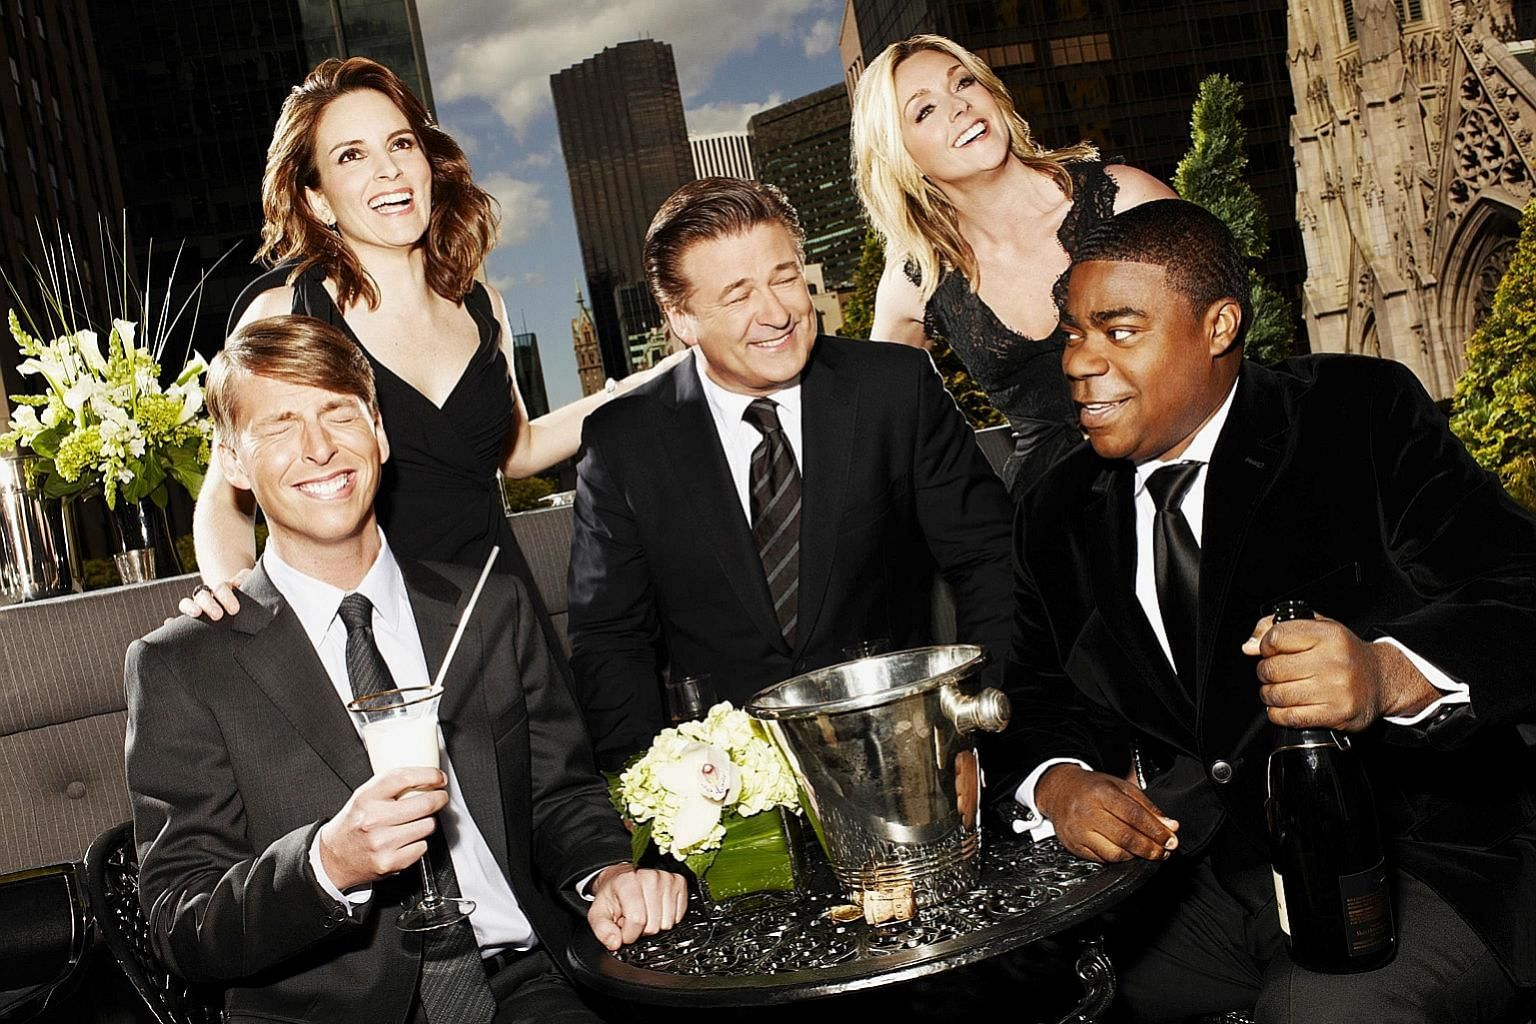 Acclaimed sitcom 30 Rock is one of several television series that had episodes taken out of circulation recently for controversial content.